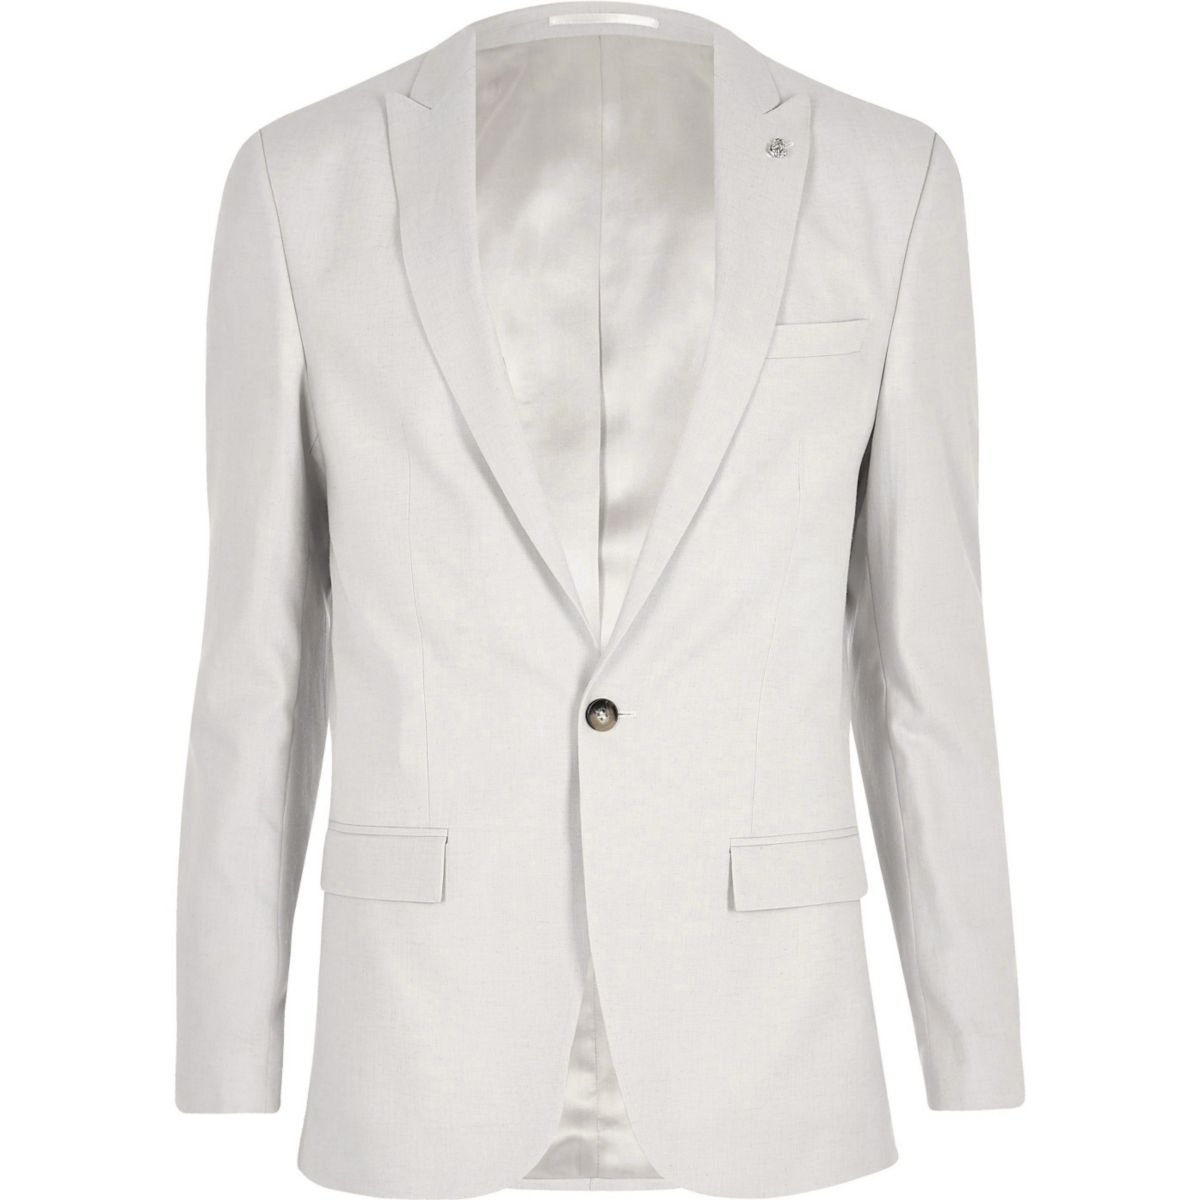 Beige linen slim fit suit jacket